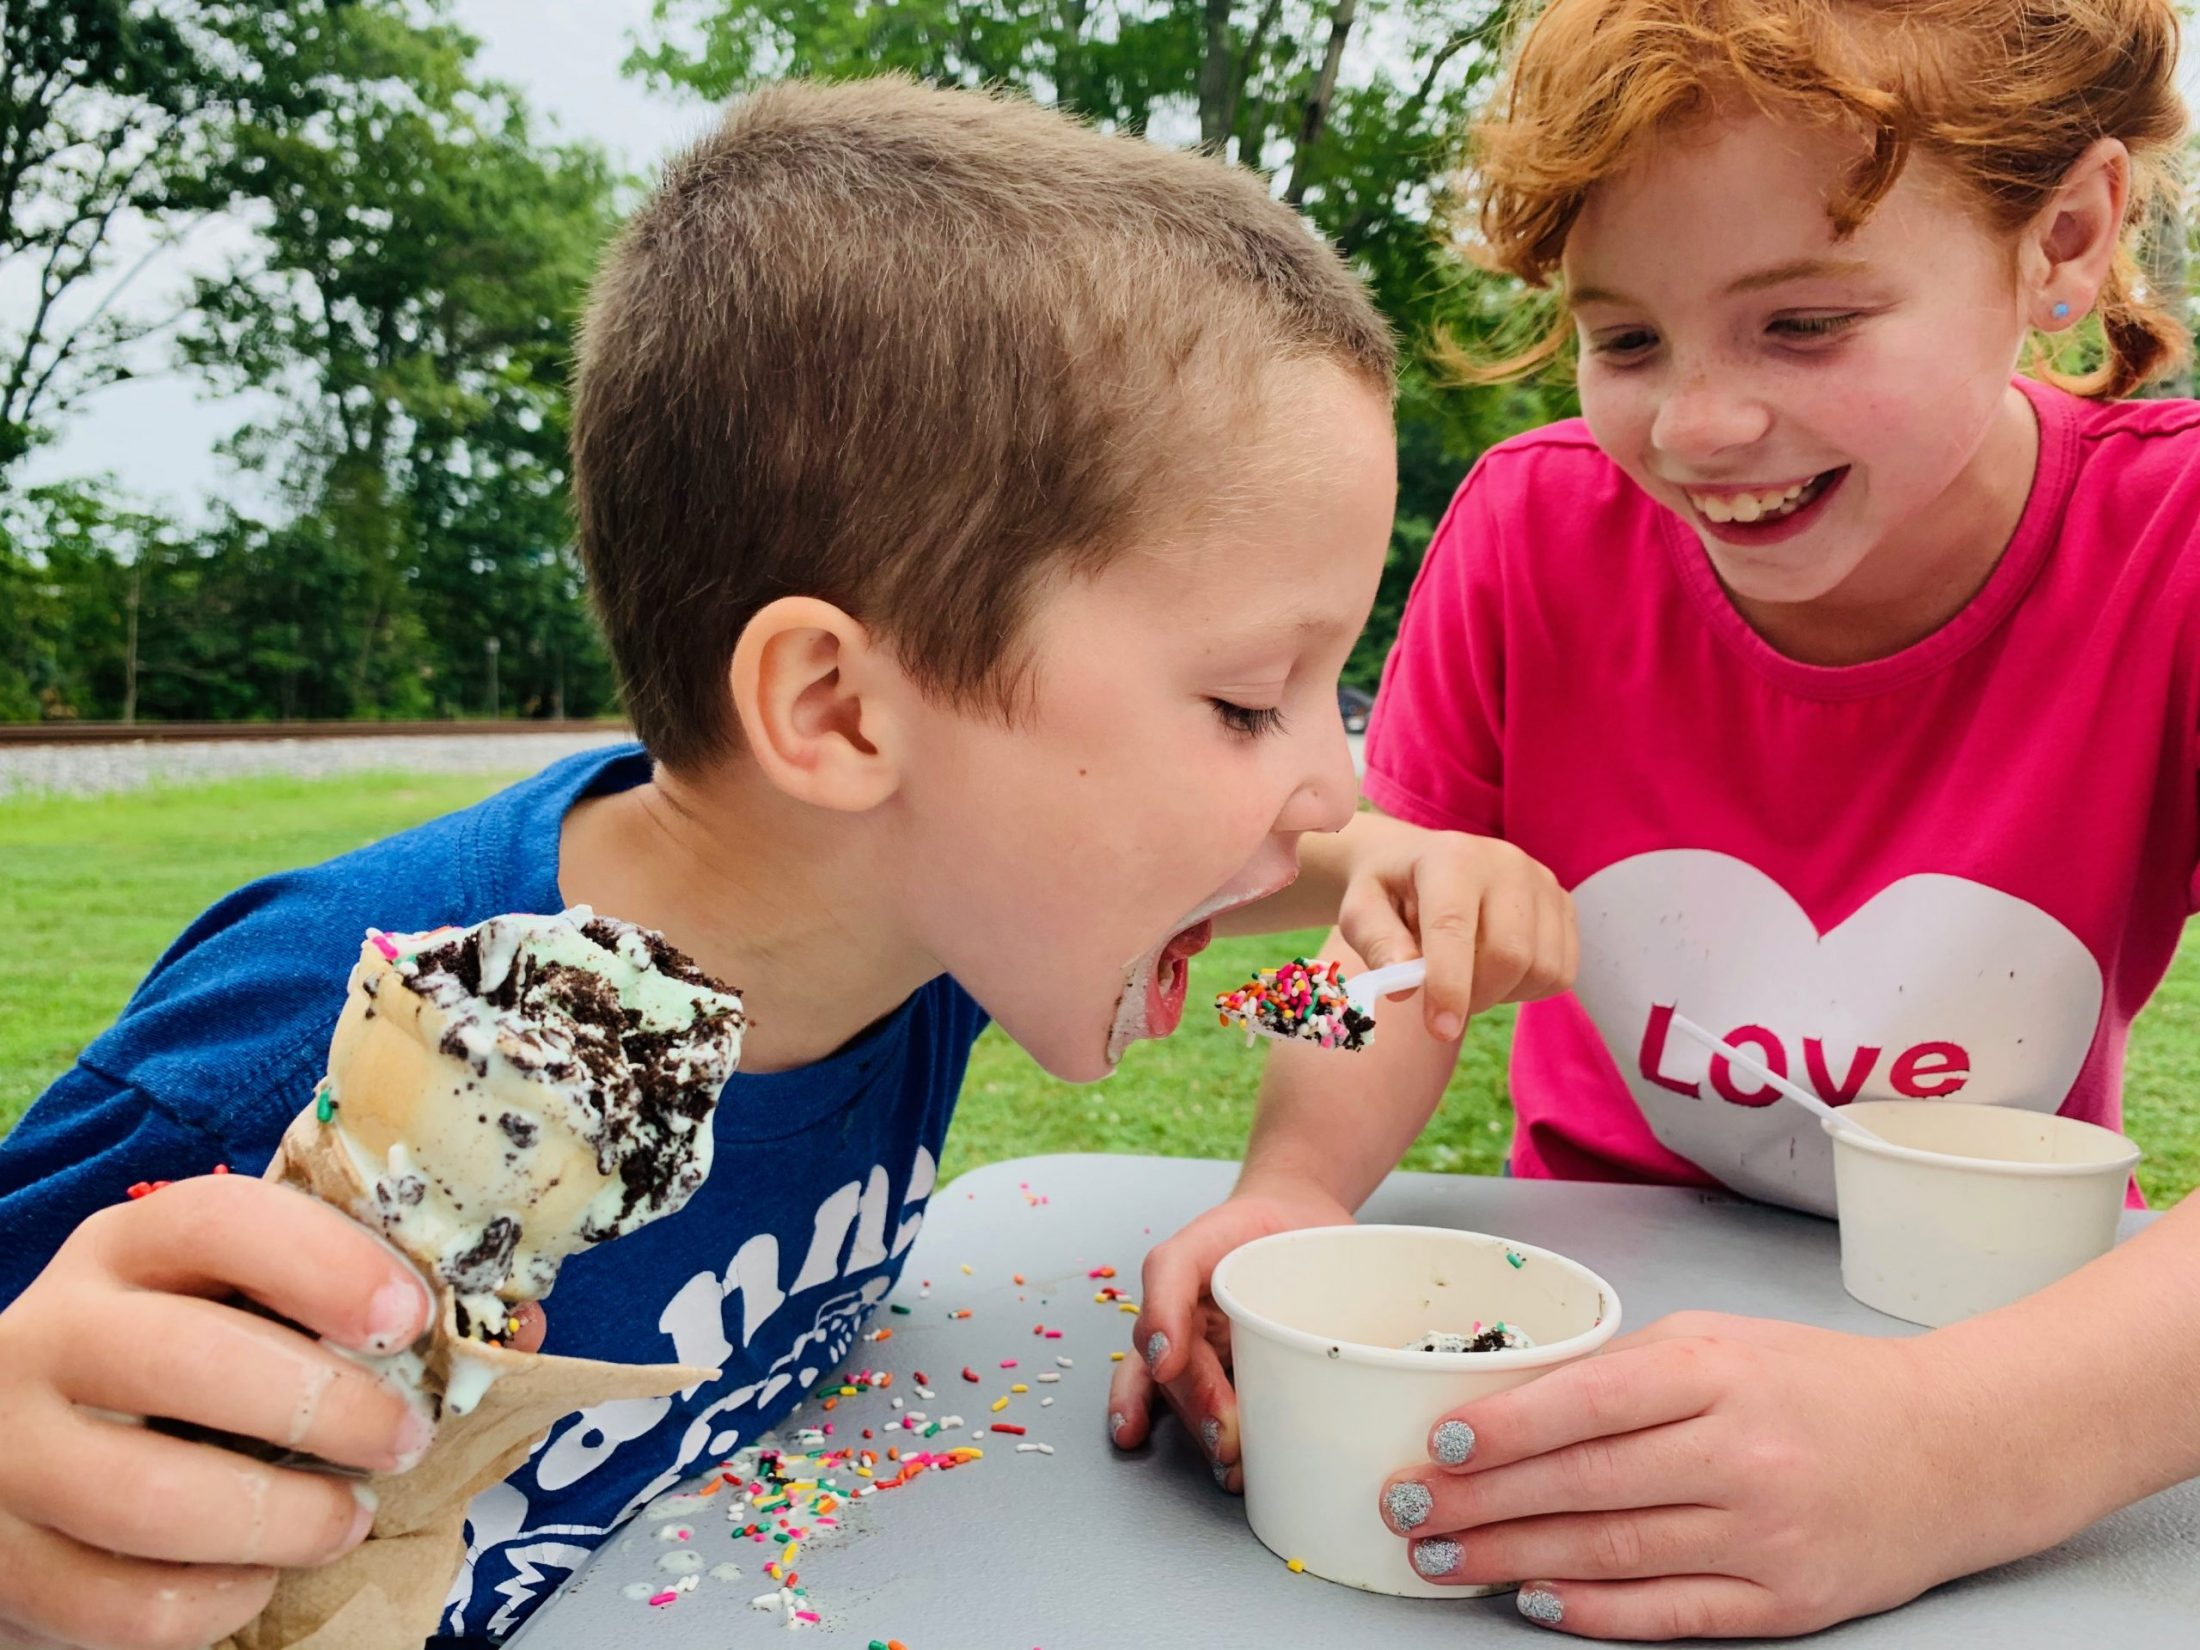 Son of DC widow blog writer Marjorie Brimley eats ice cream with a friend